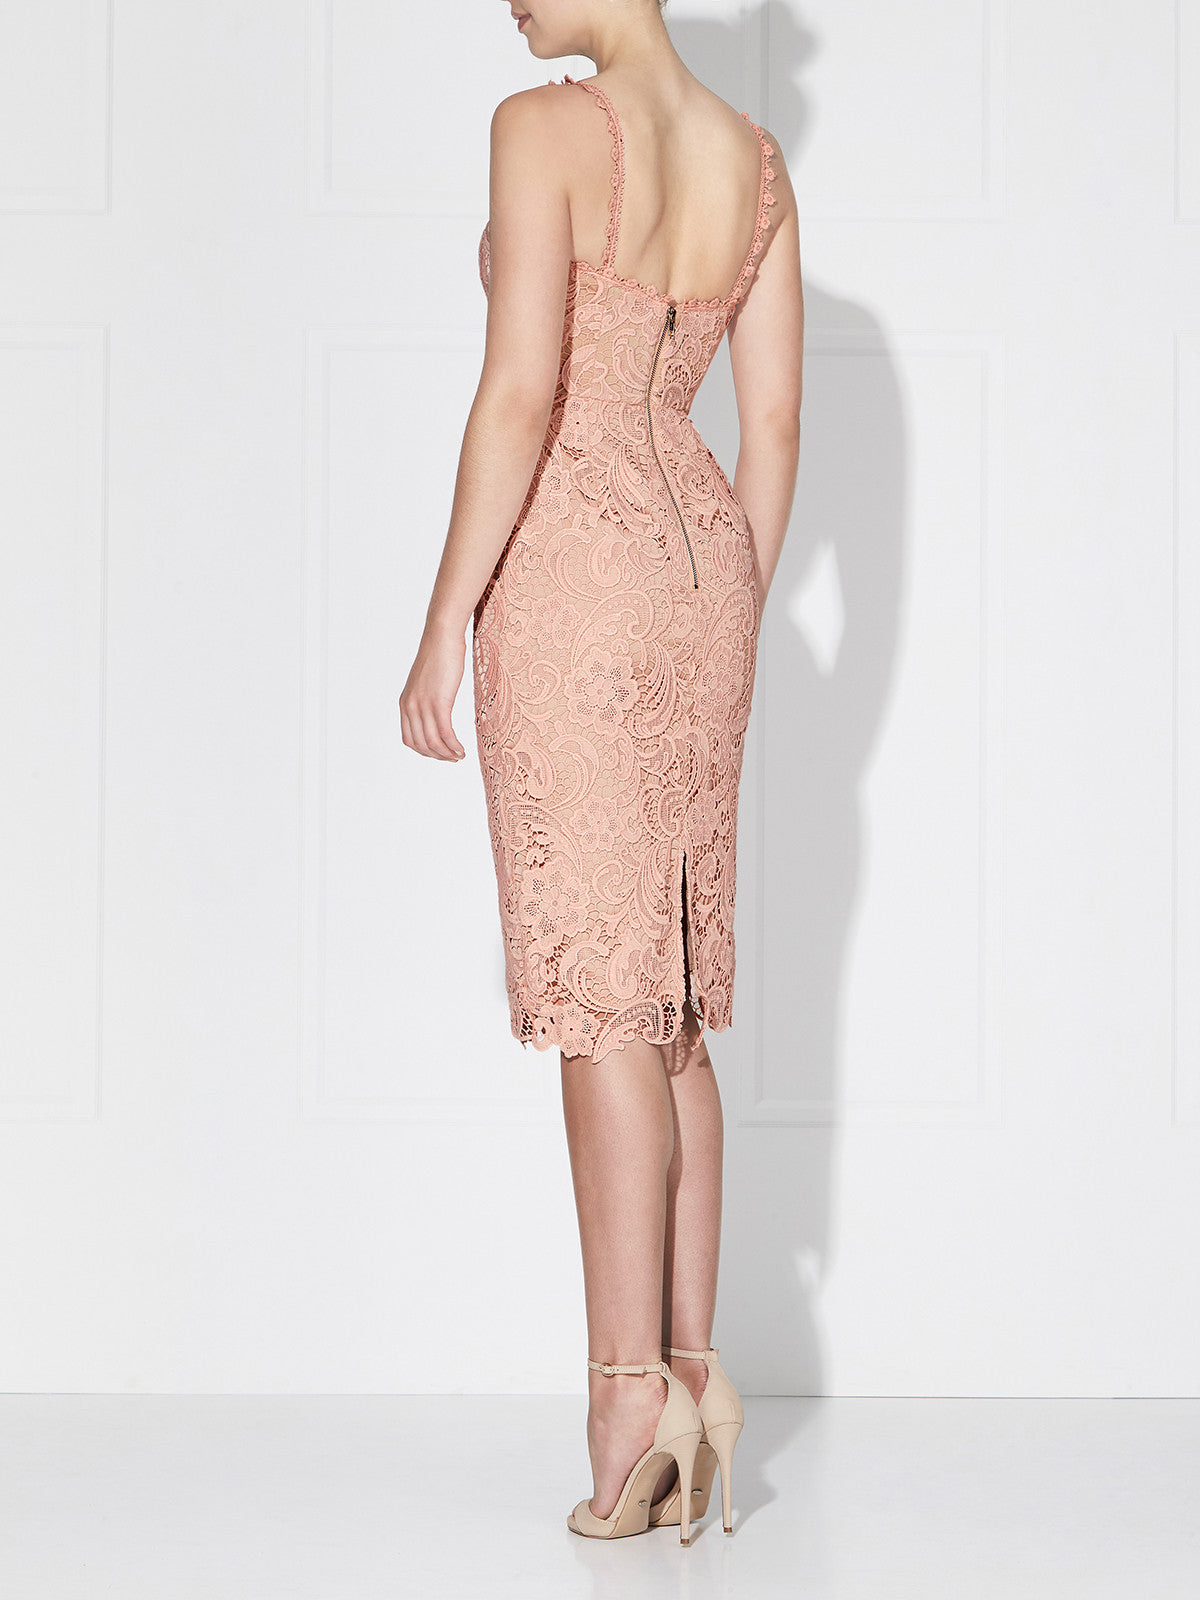 BLUSHING DRESS- DUSTY PINK/NUDE